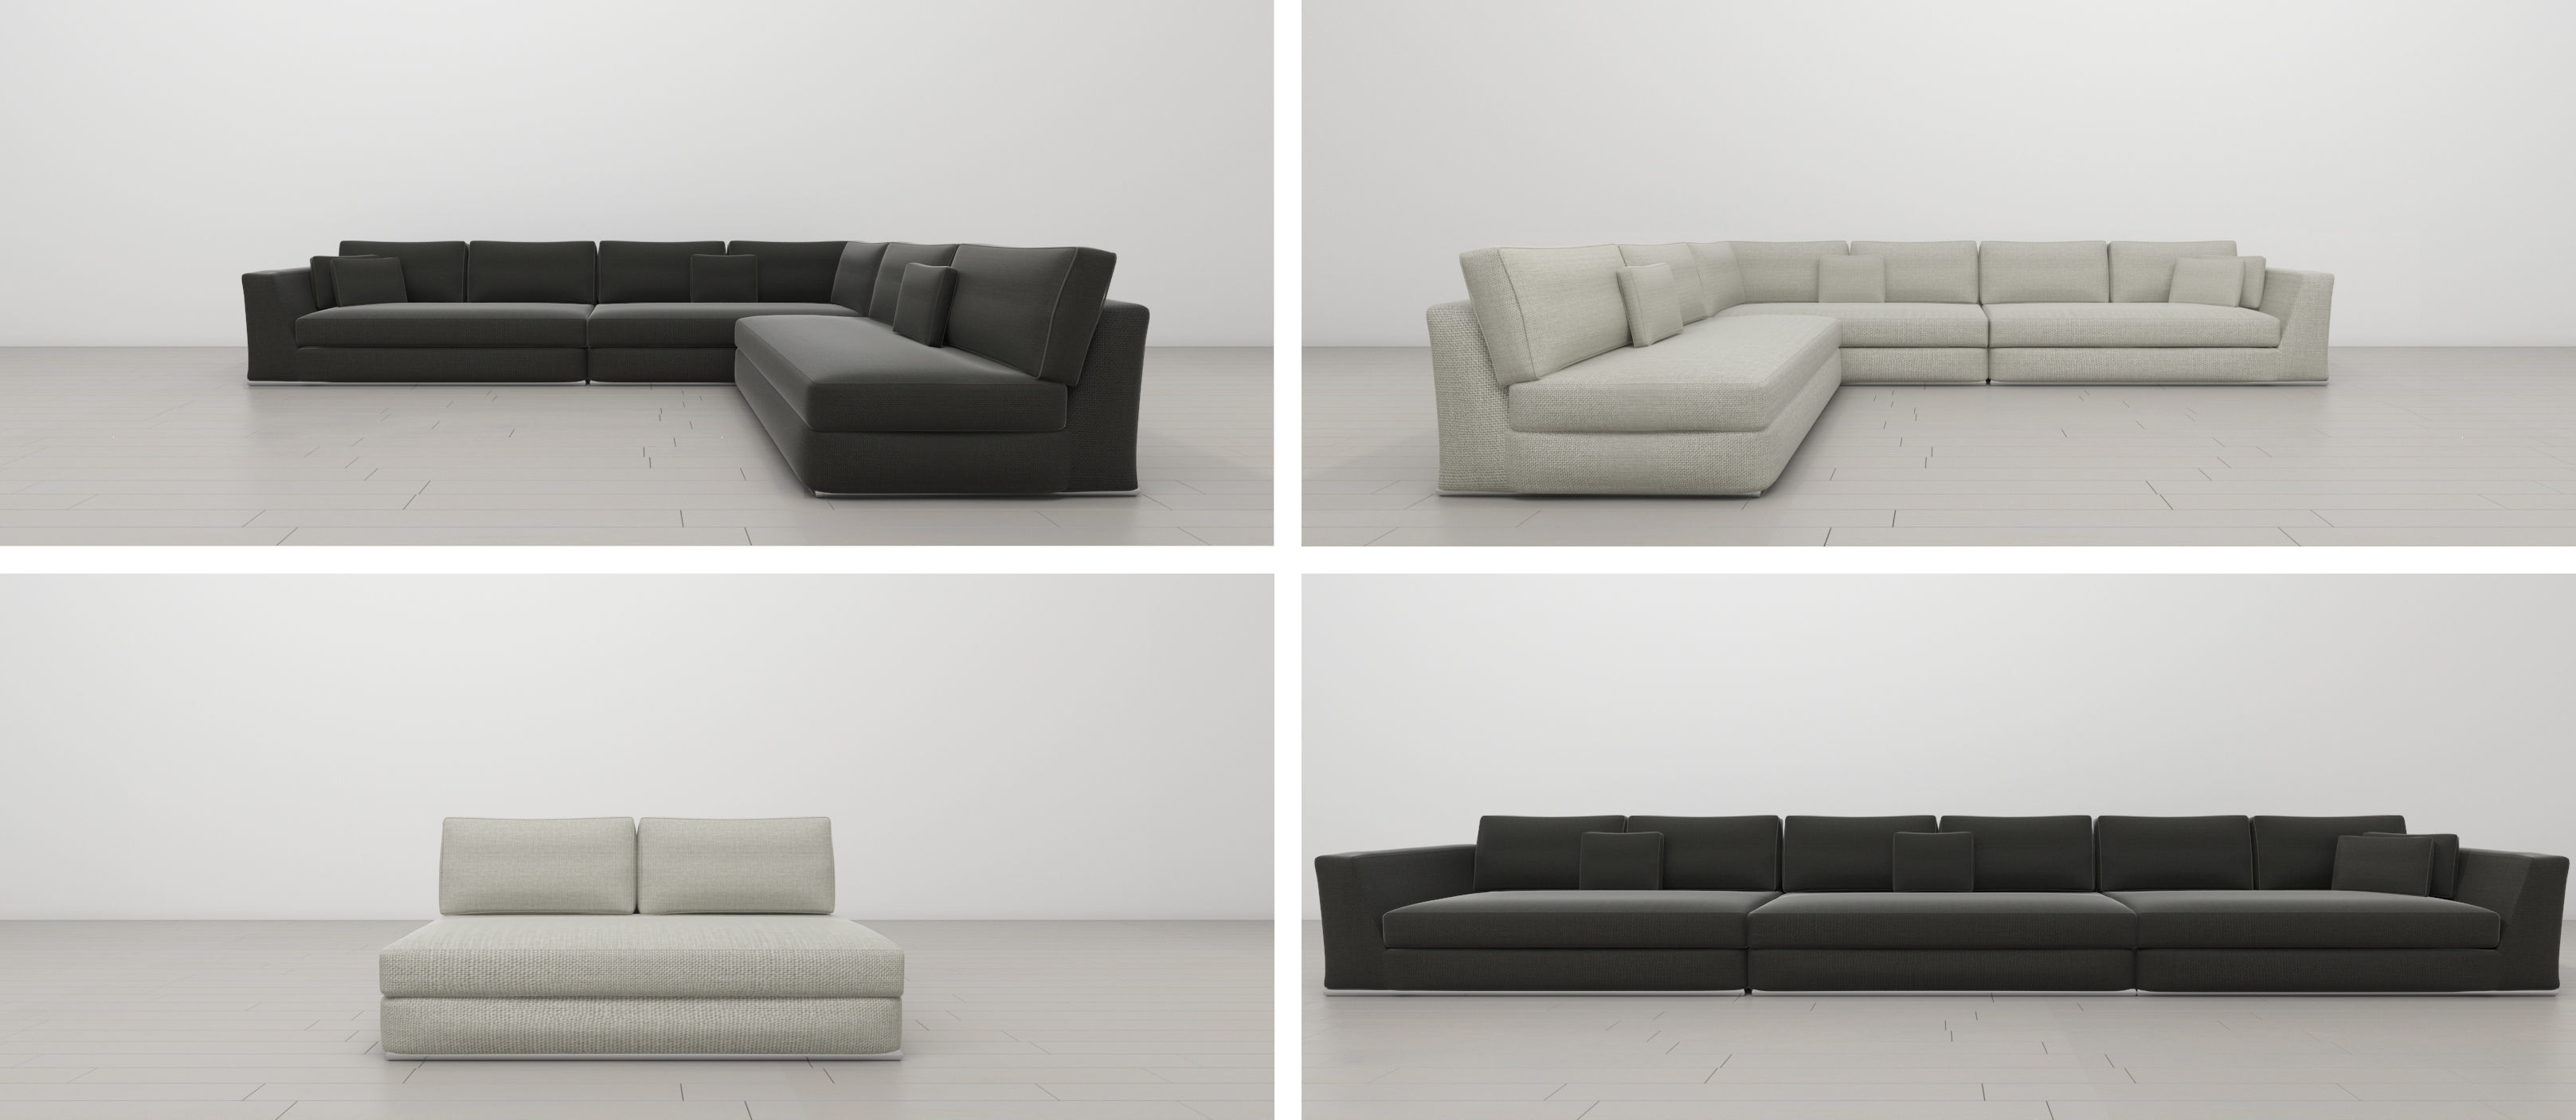 UrbanMod Modern Reversible Sectional Sofa Gray and White | 3D model